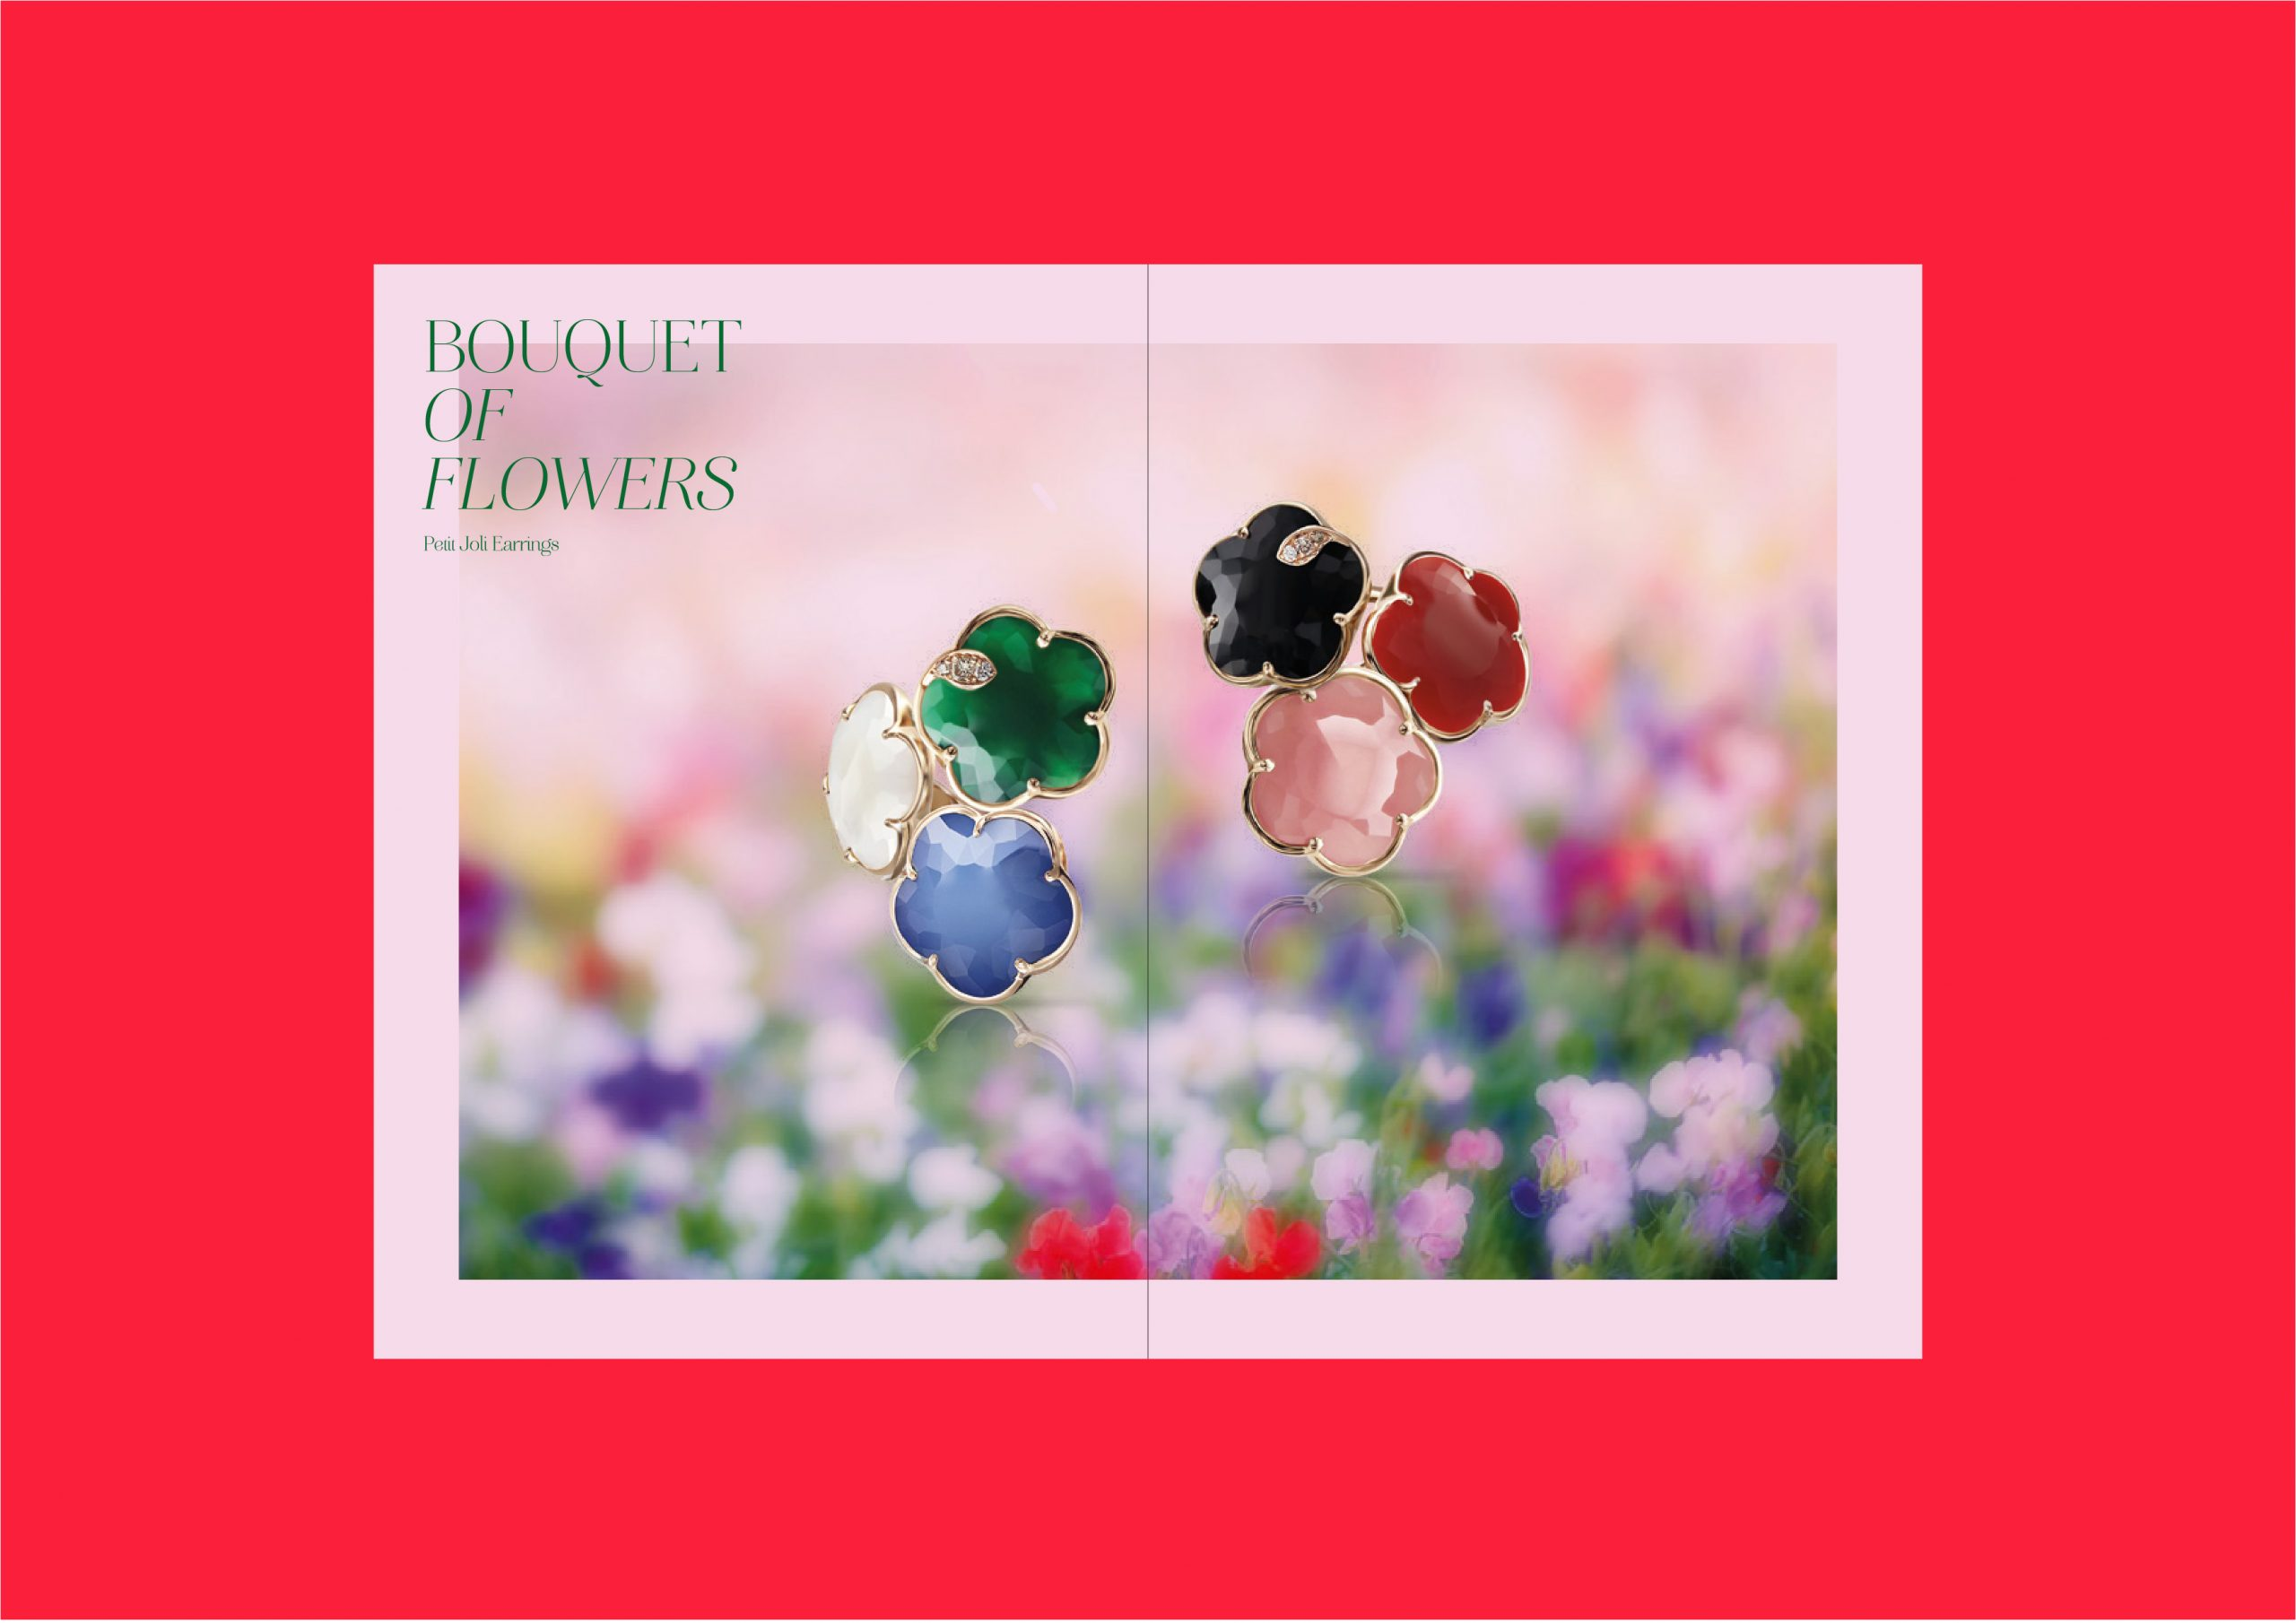 Pasquale Bruni joaillerie book bouquet of flowers